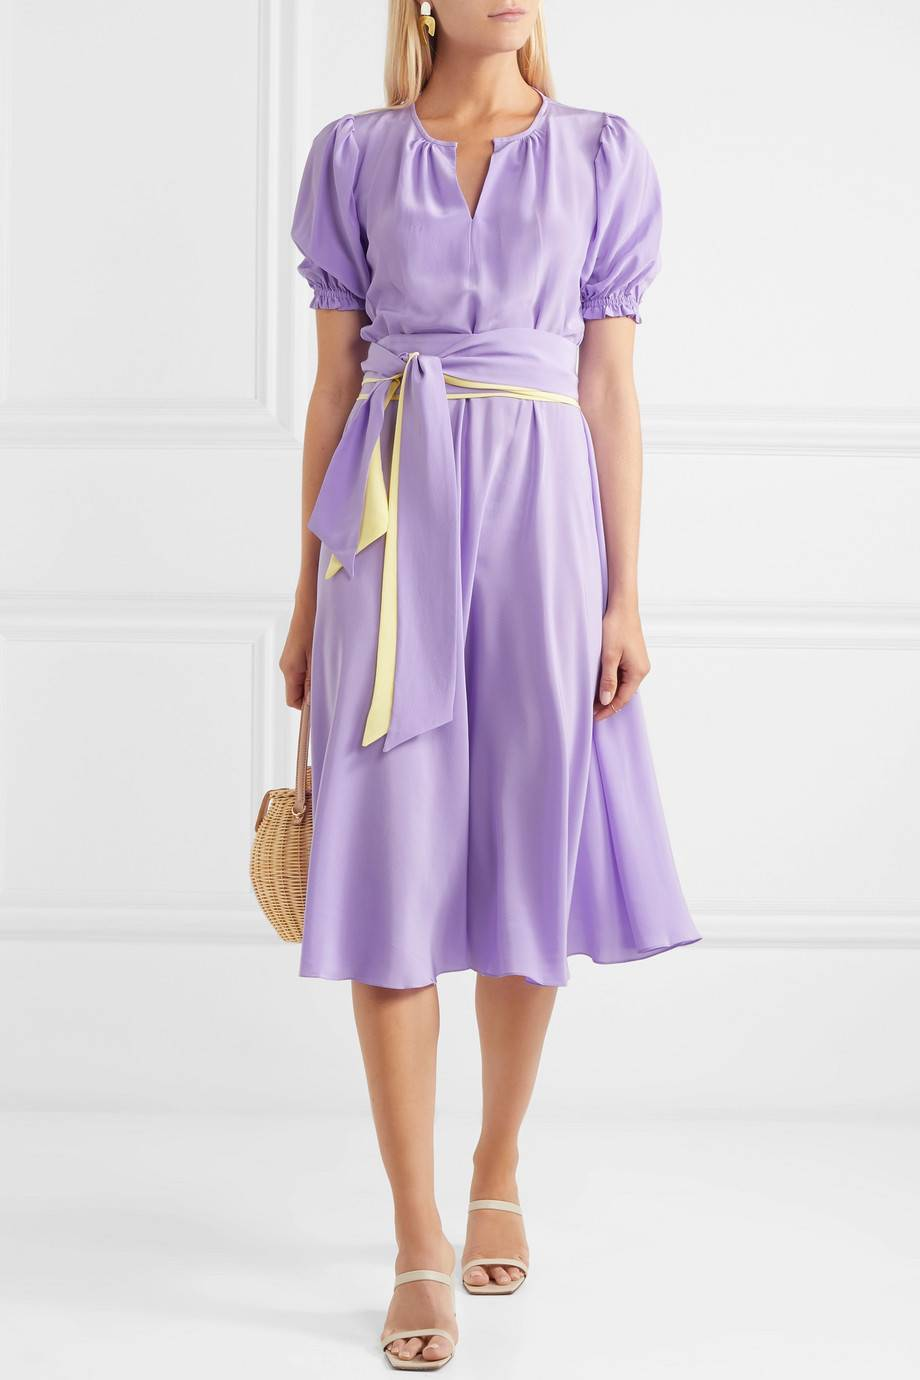 what-to-wear-for-a-summer-wedding-guest-outfit-purple-light-dress-aline-tan-shoe-sandalh-blonde-dinner.jpg